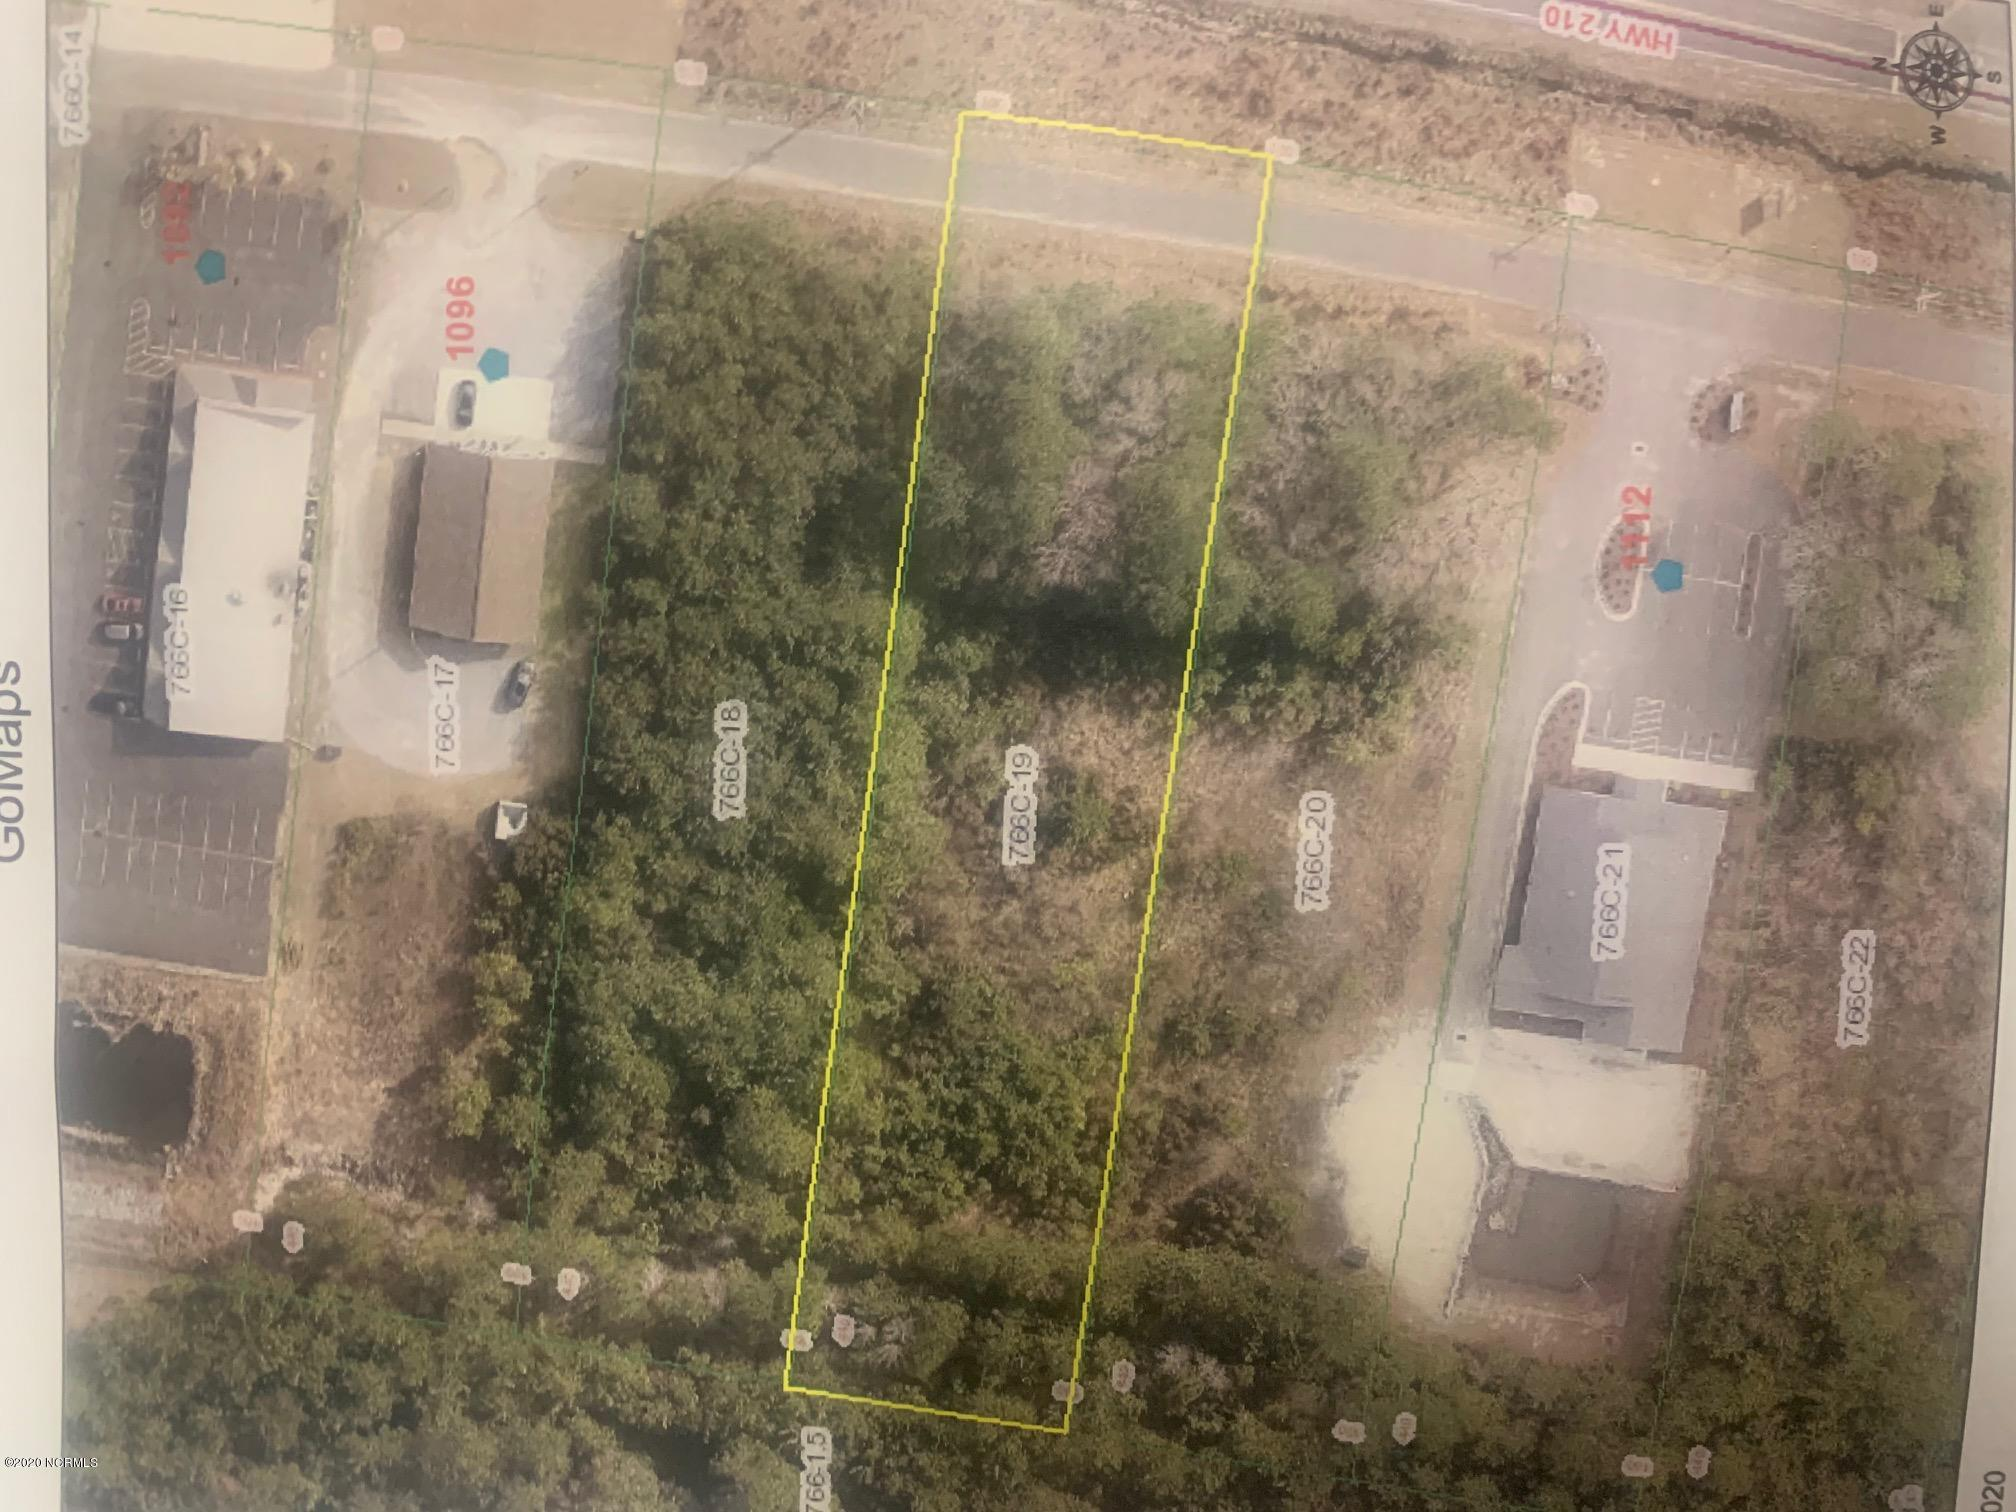 1108 Nc Highway 210, Sneads Ferry, North Carolina 28460, ,Commercial/industrial,For sale,Nc Highway 210,100221049